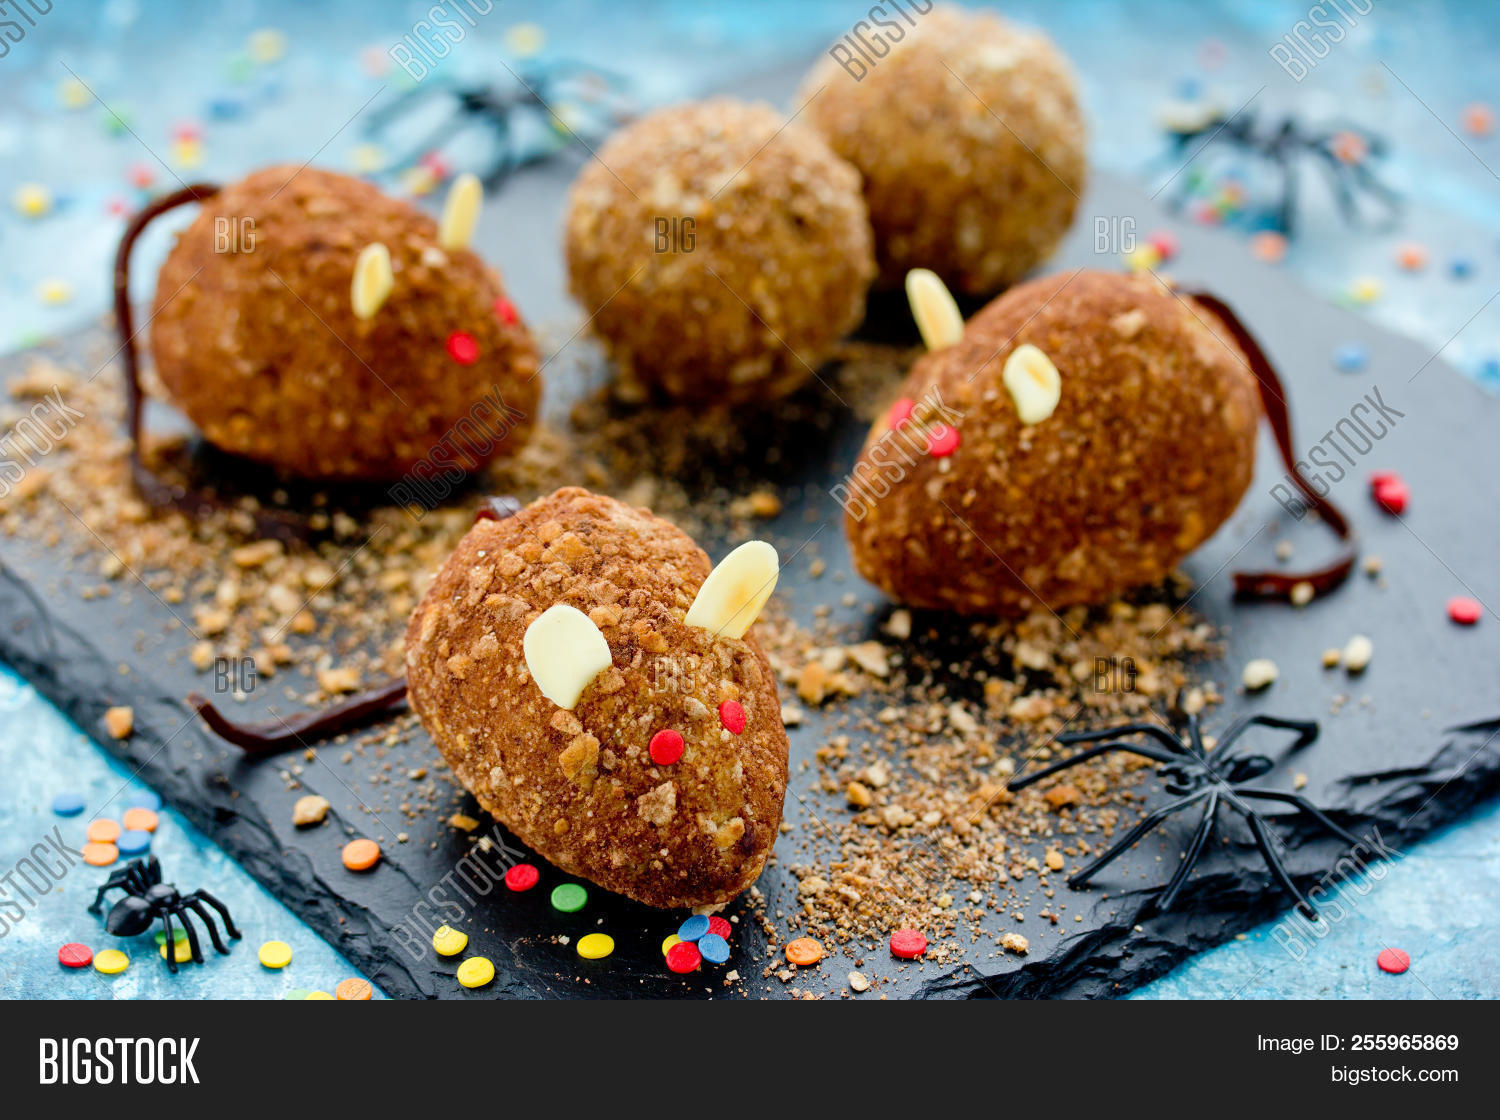 mice cakes - funny image & photo (free trial) | bigstock